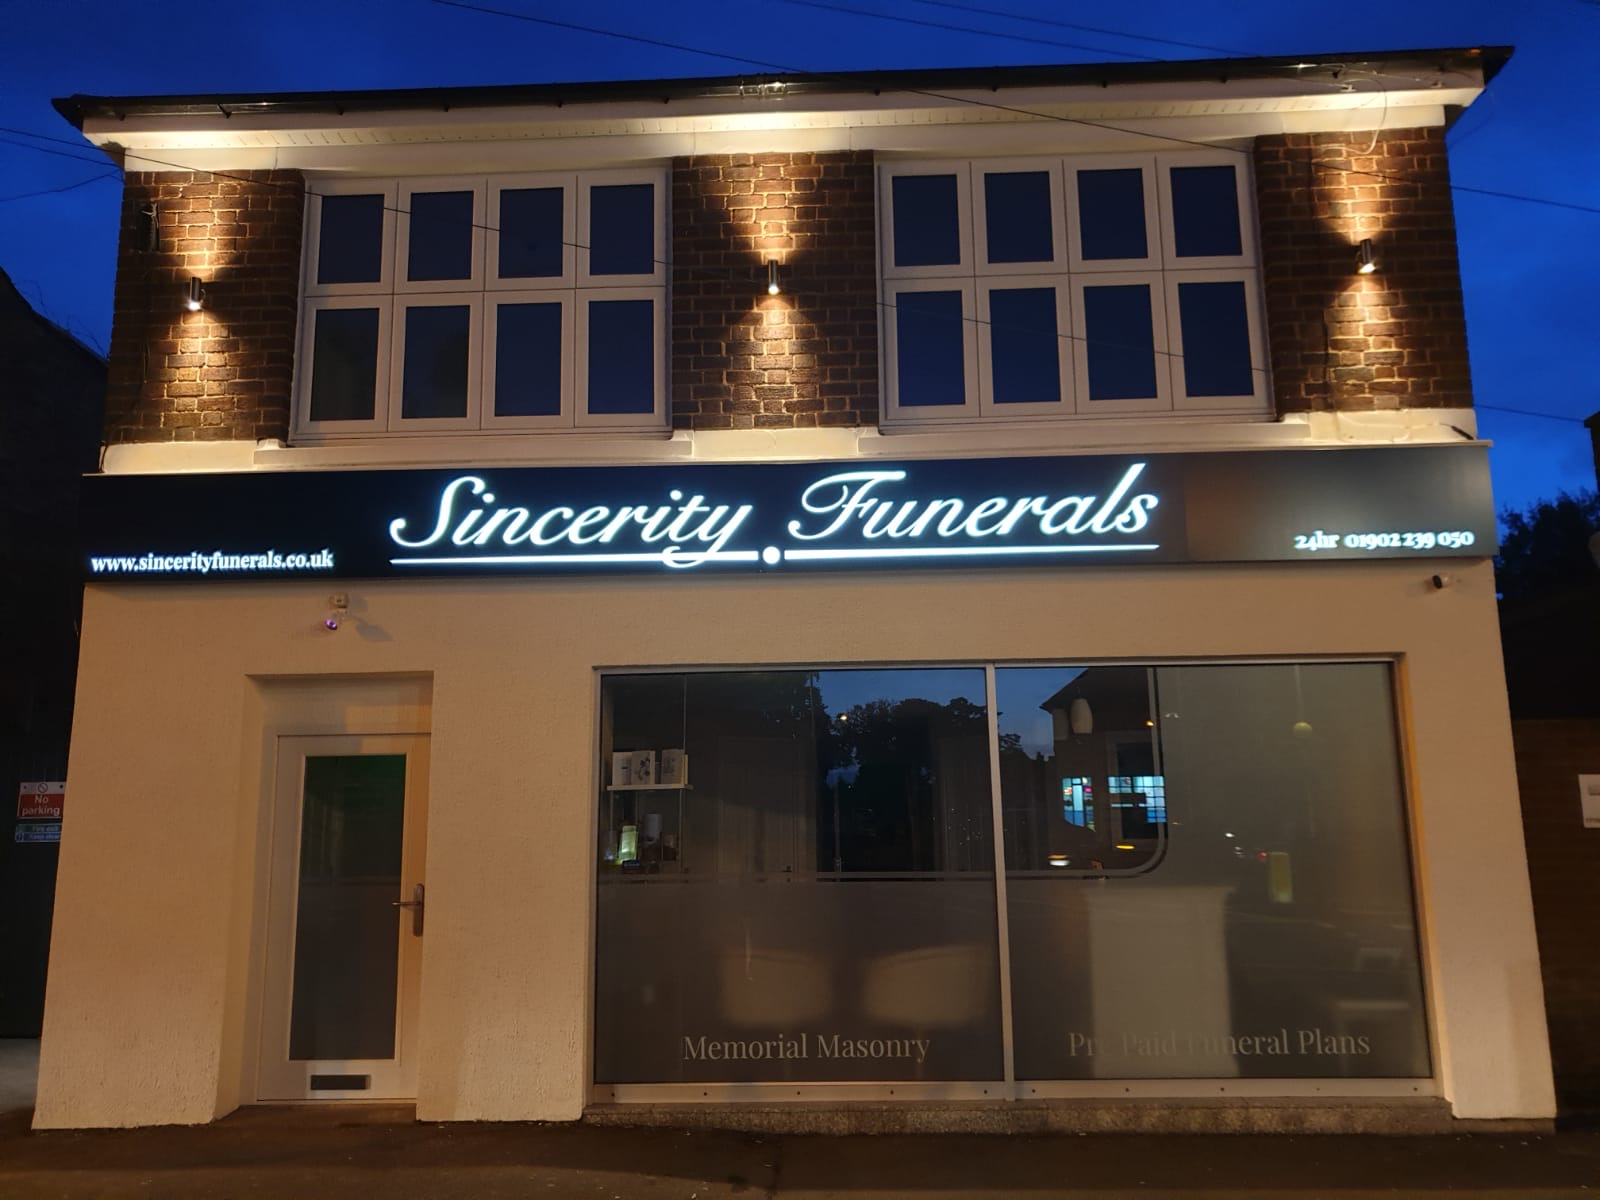 image of the front of Sincerity Funerals a Funeral Directors in Wolverhampton